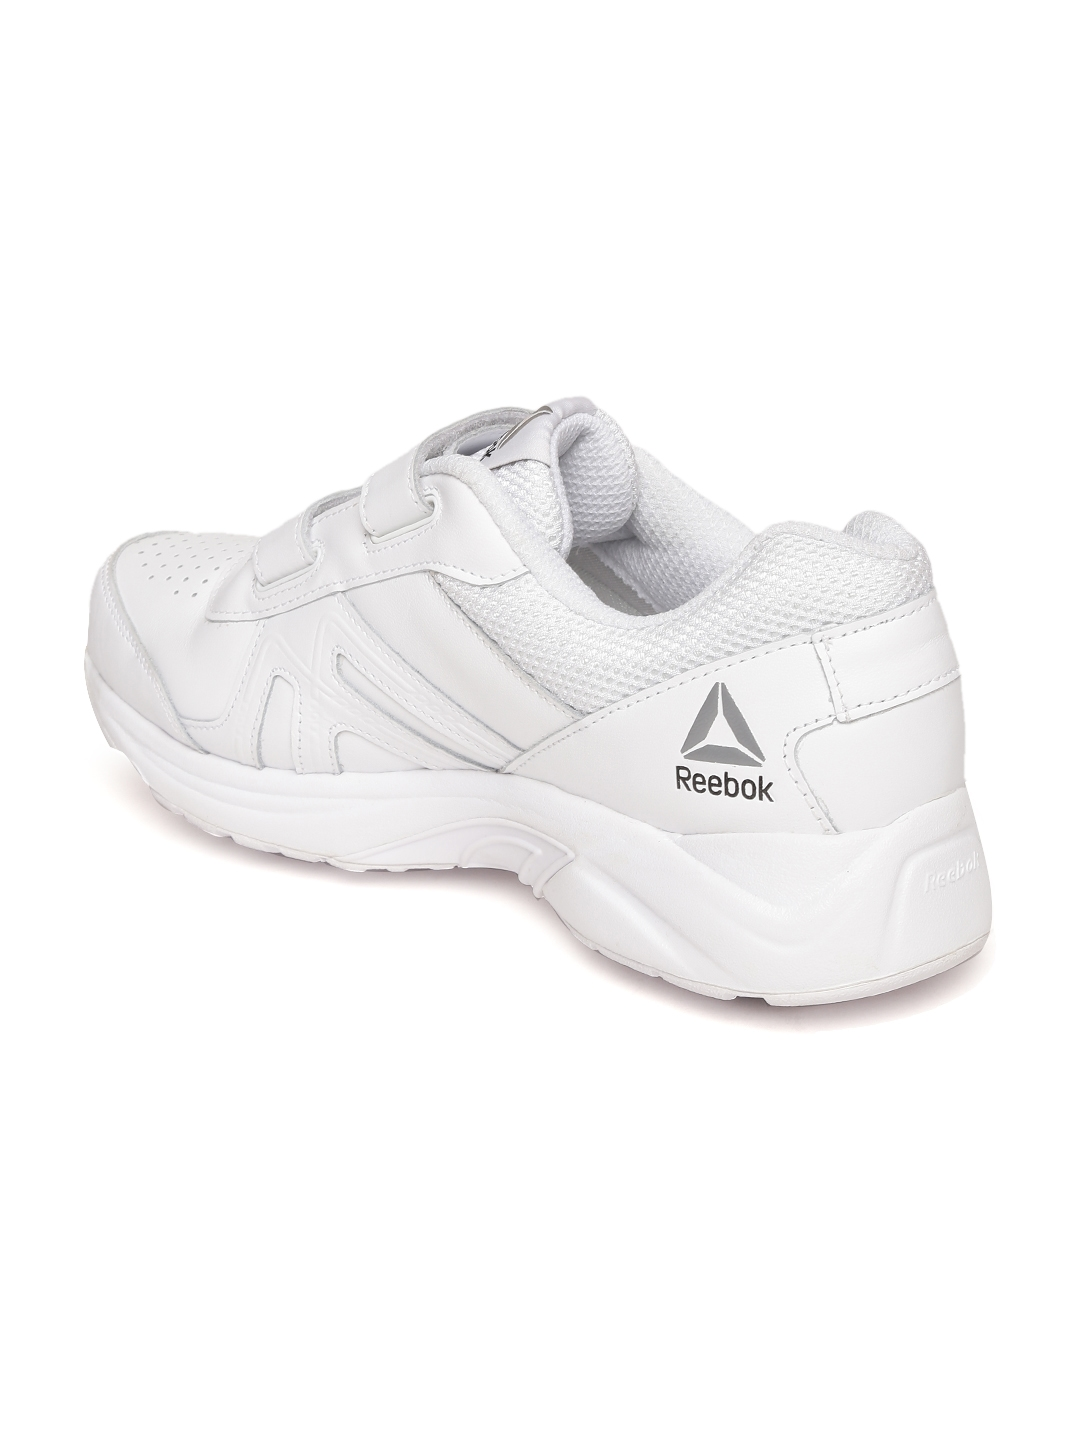 1480562808bb2a Buy Reebok Men Off White Max Stride Plus Walking Shoes - Sports ...